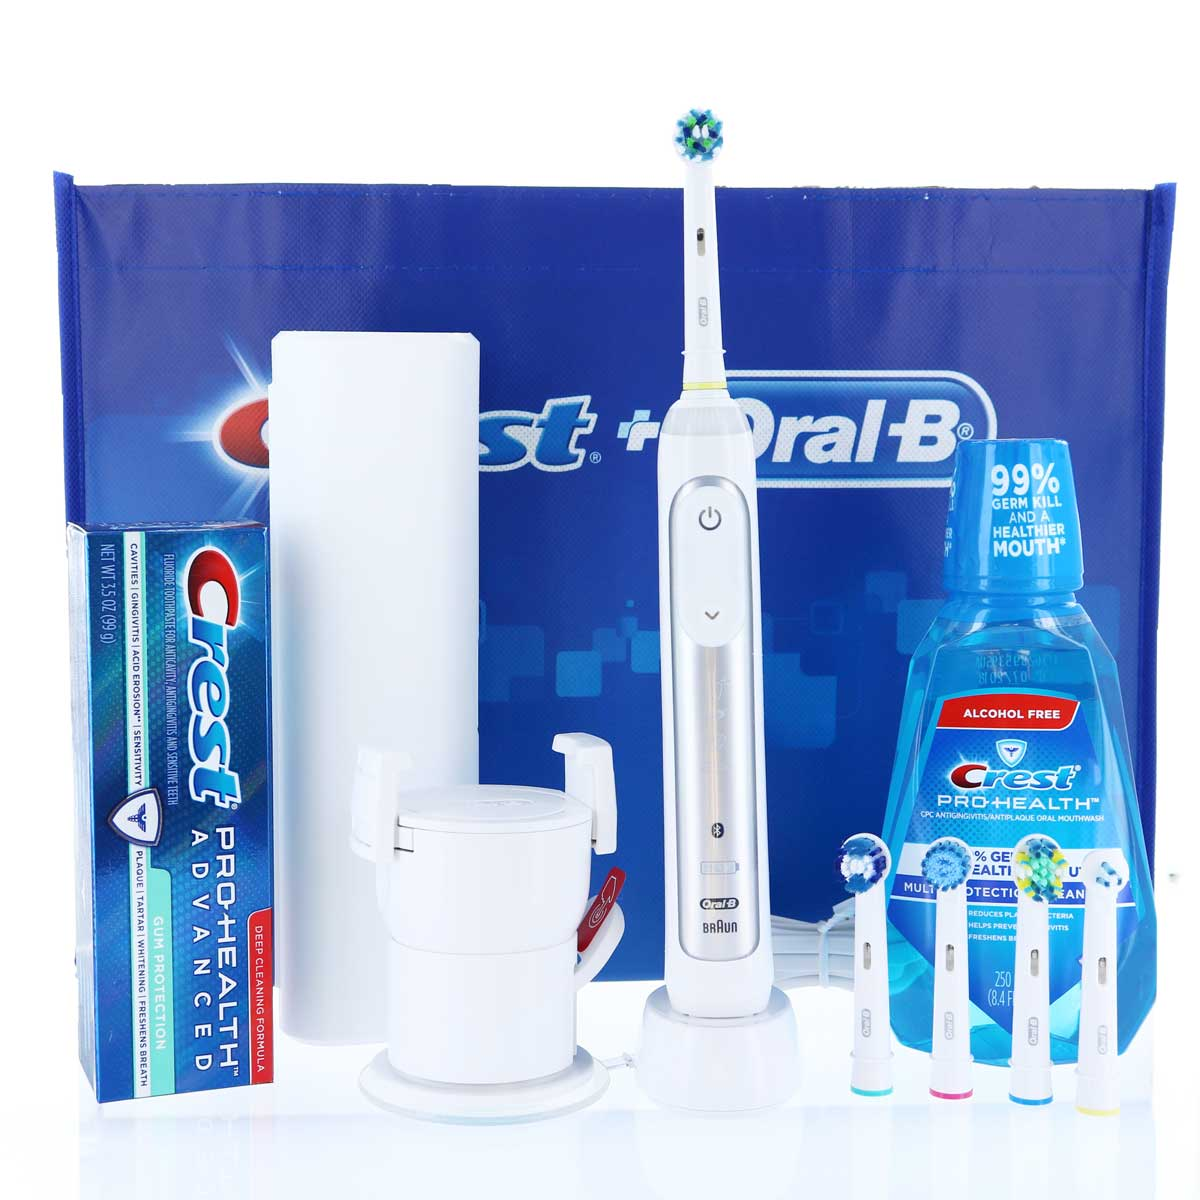 Oral-B GENIUS Pro Power Toothbrush with Bluetooth Kit